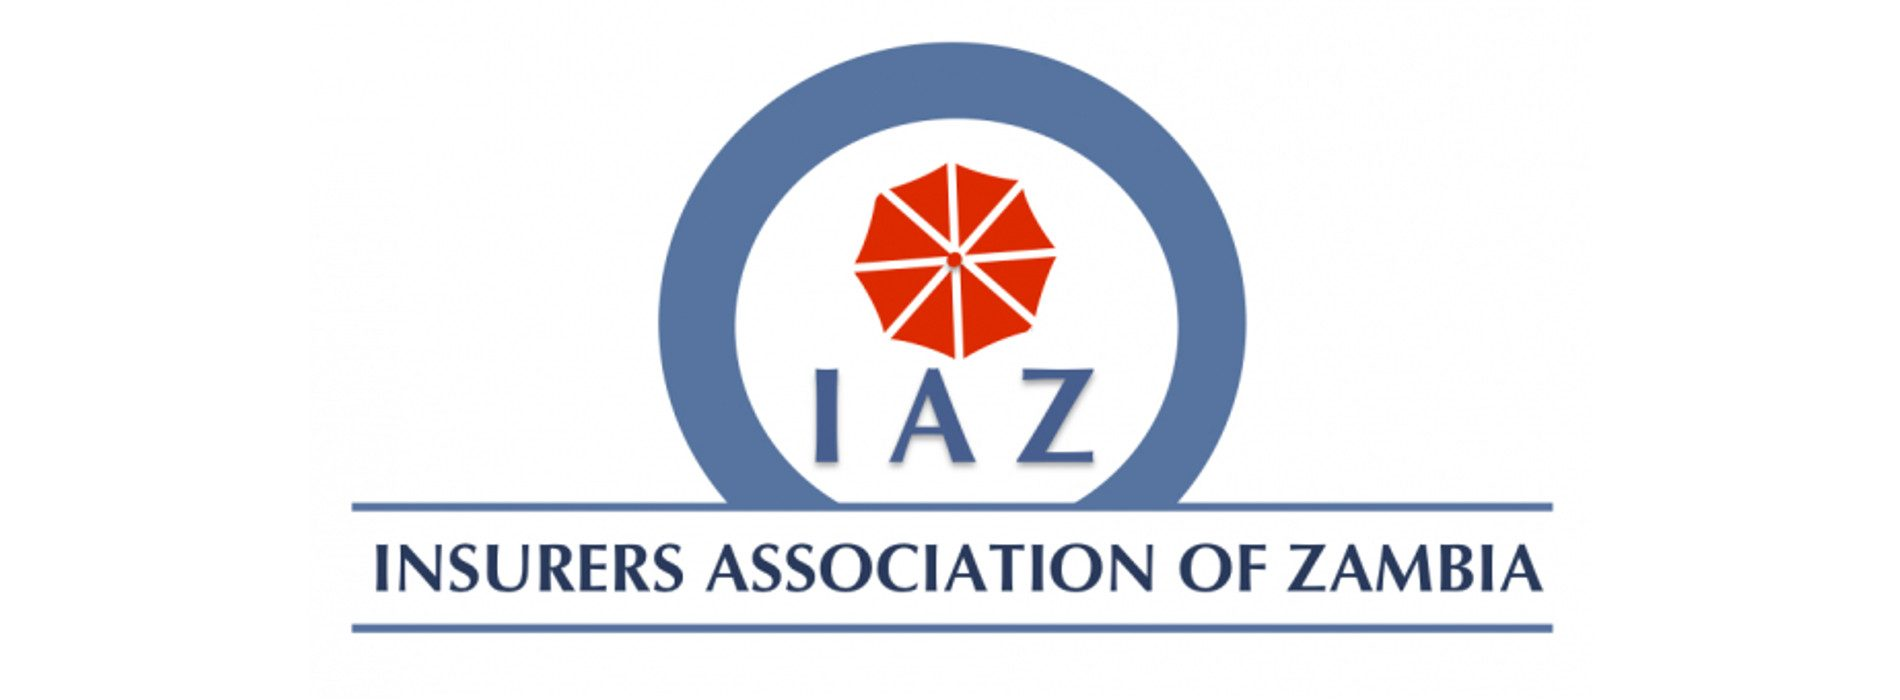 80,000 farmers get IAZ insurance cover